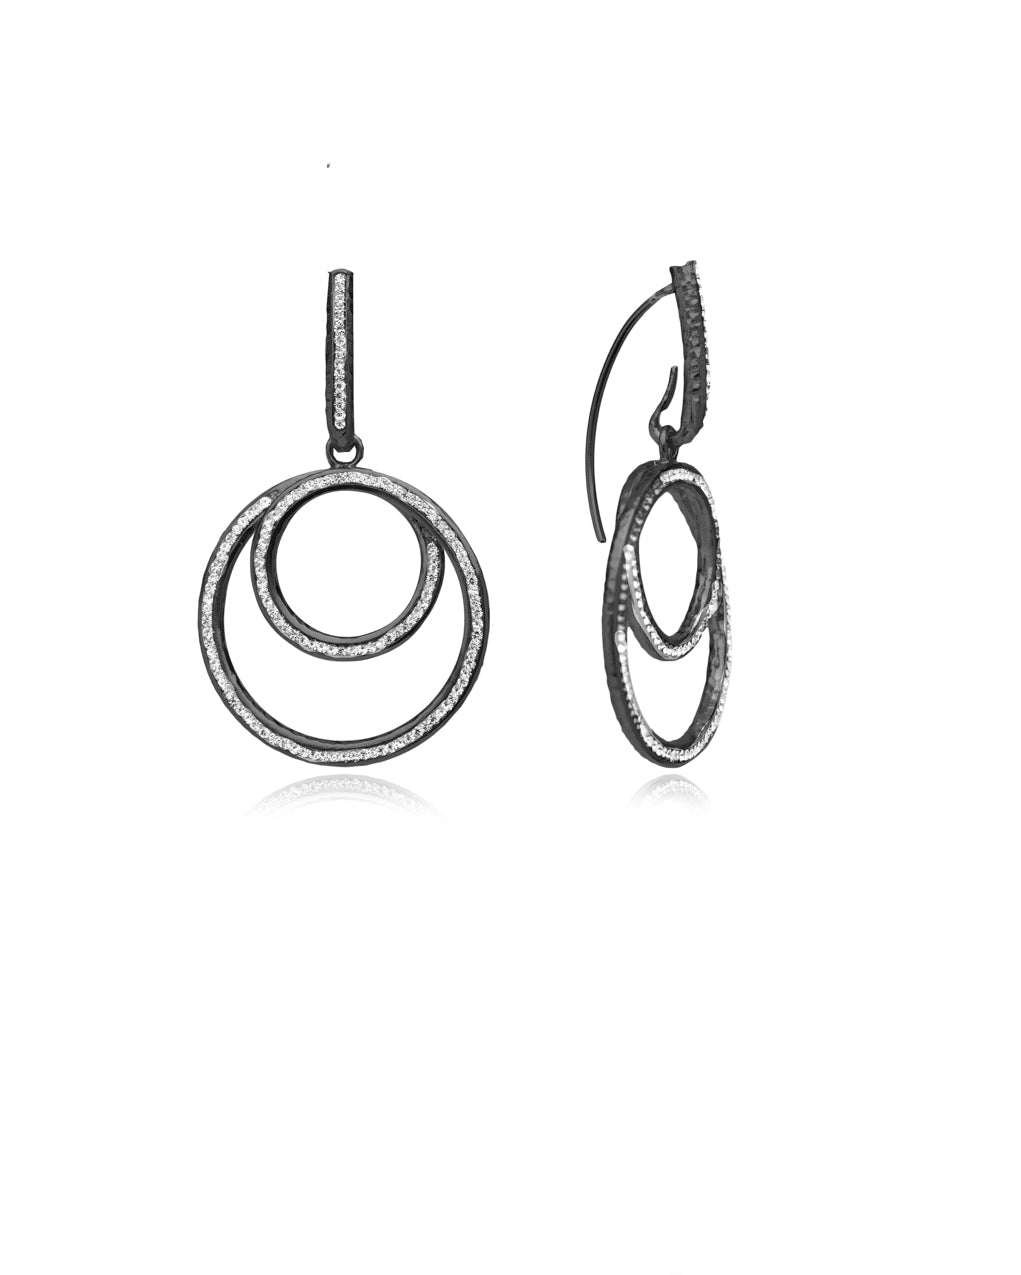 Eternity Swirl Loop Earrings